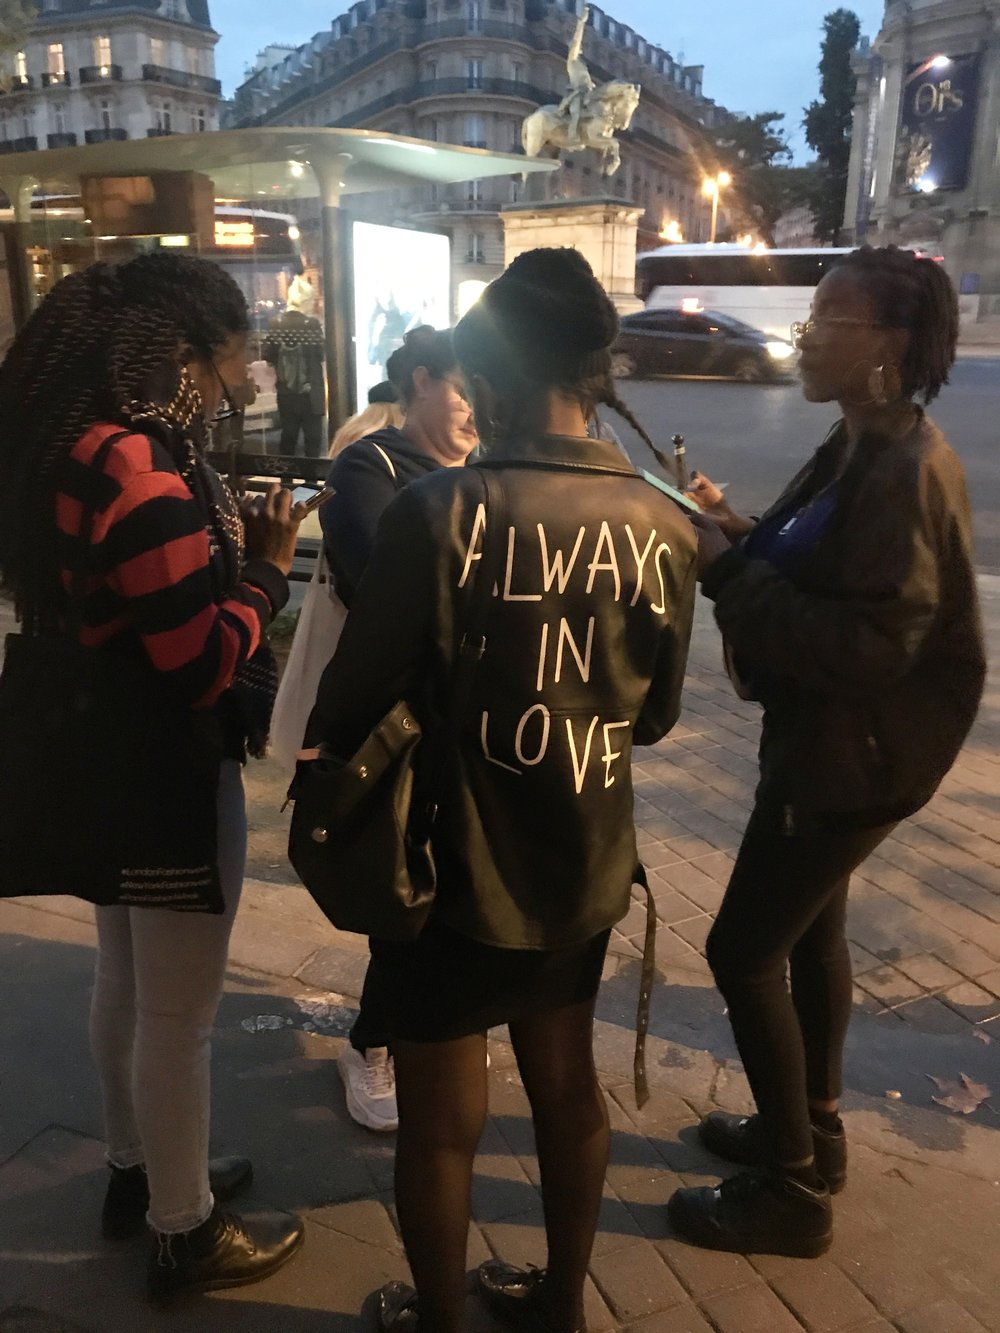 Socializing in the streets,belles personnes, always in love